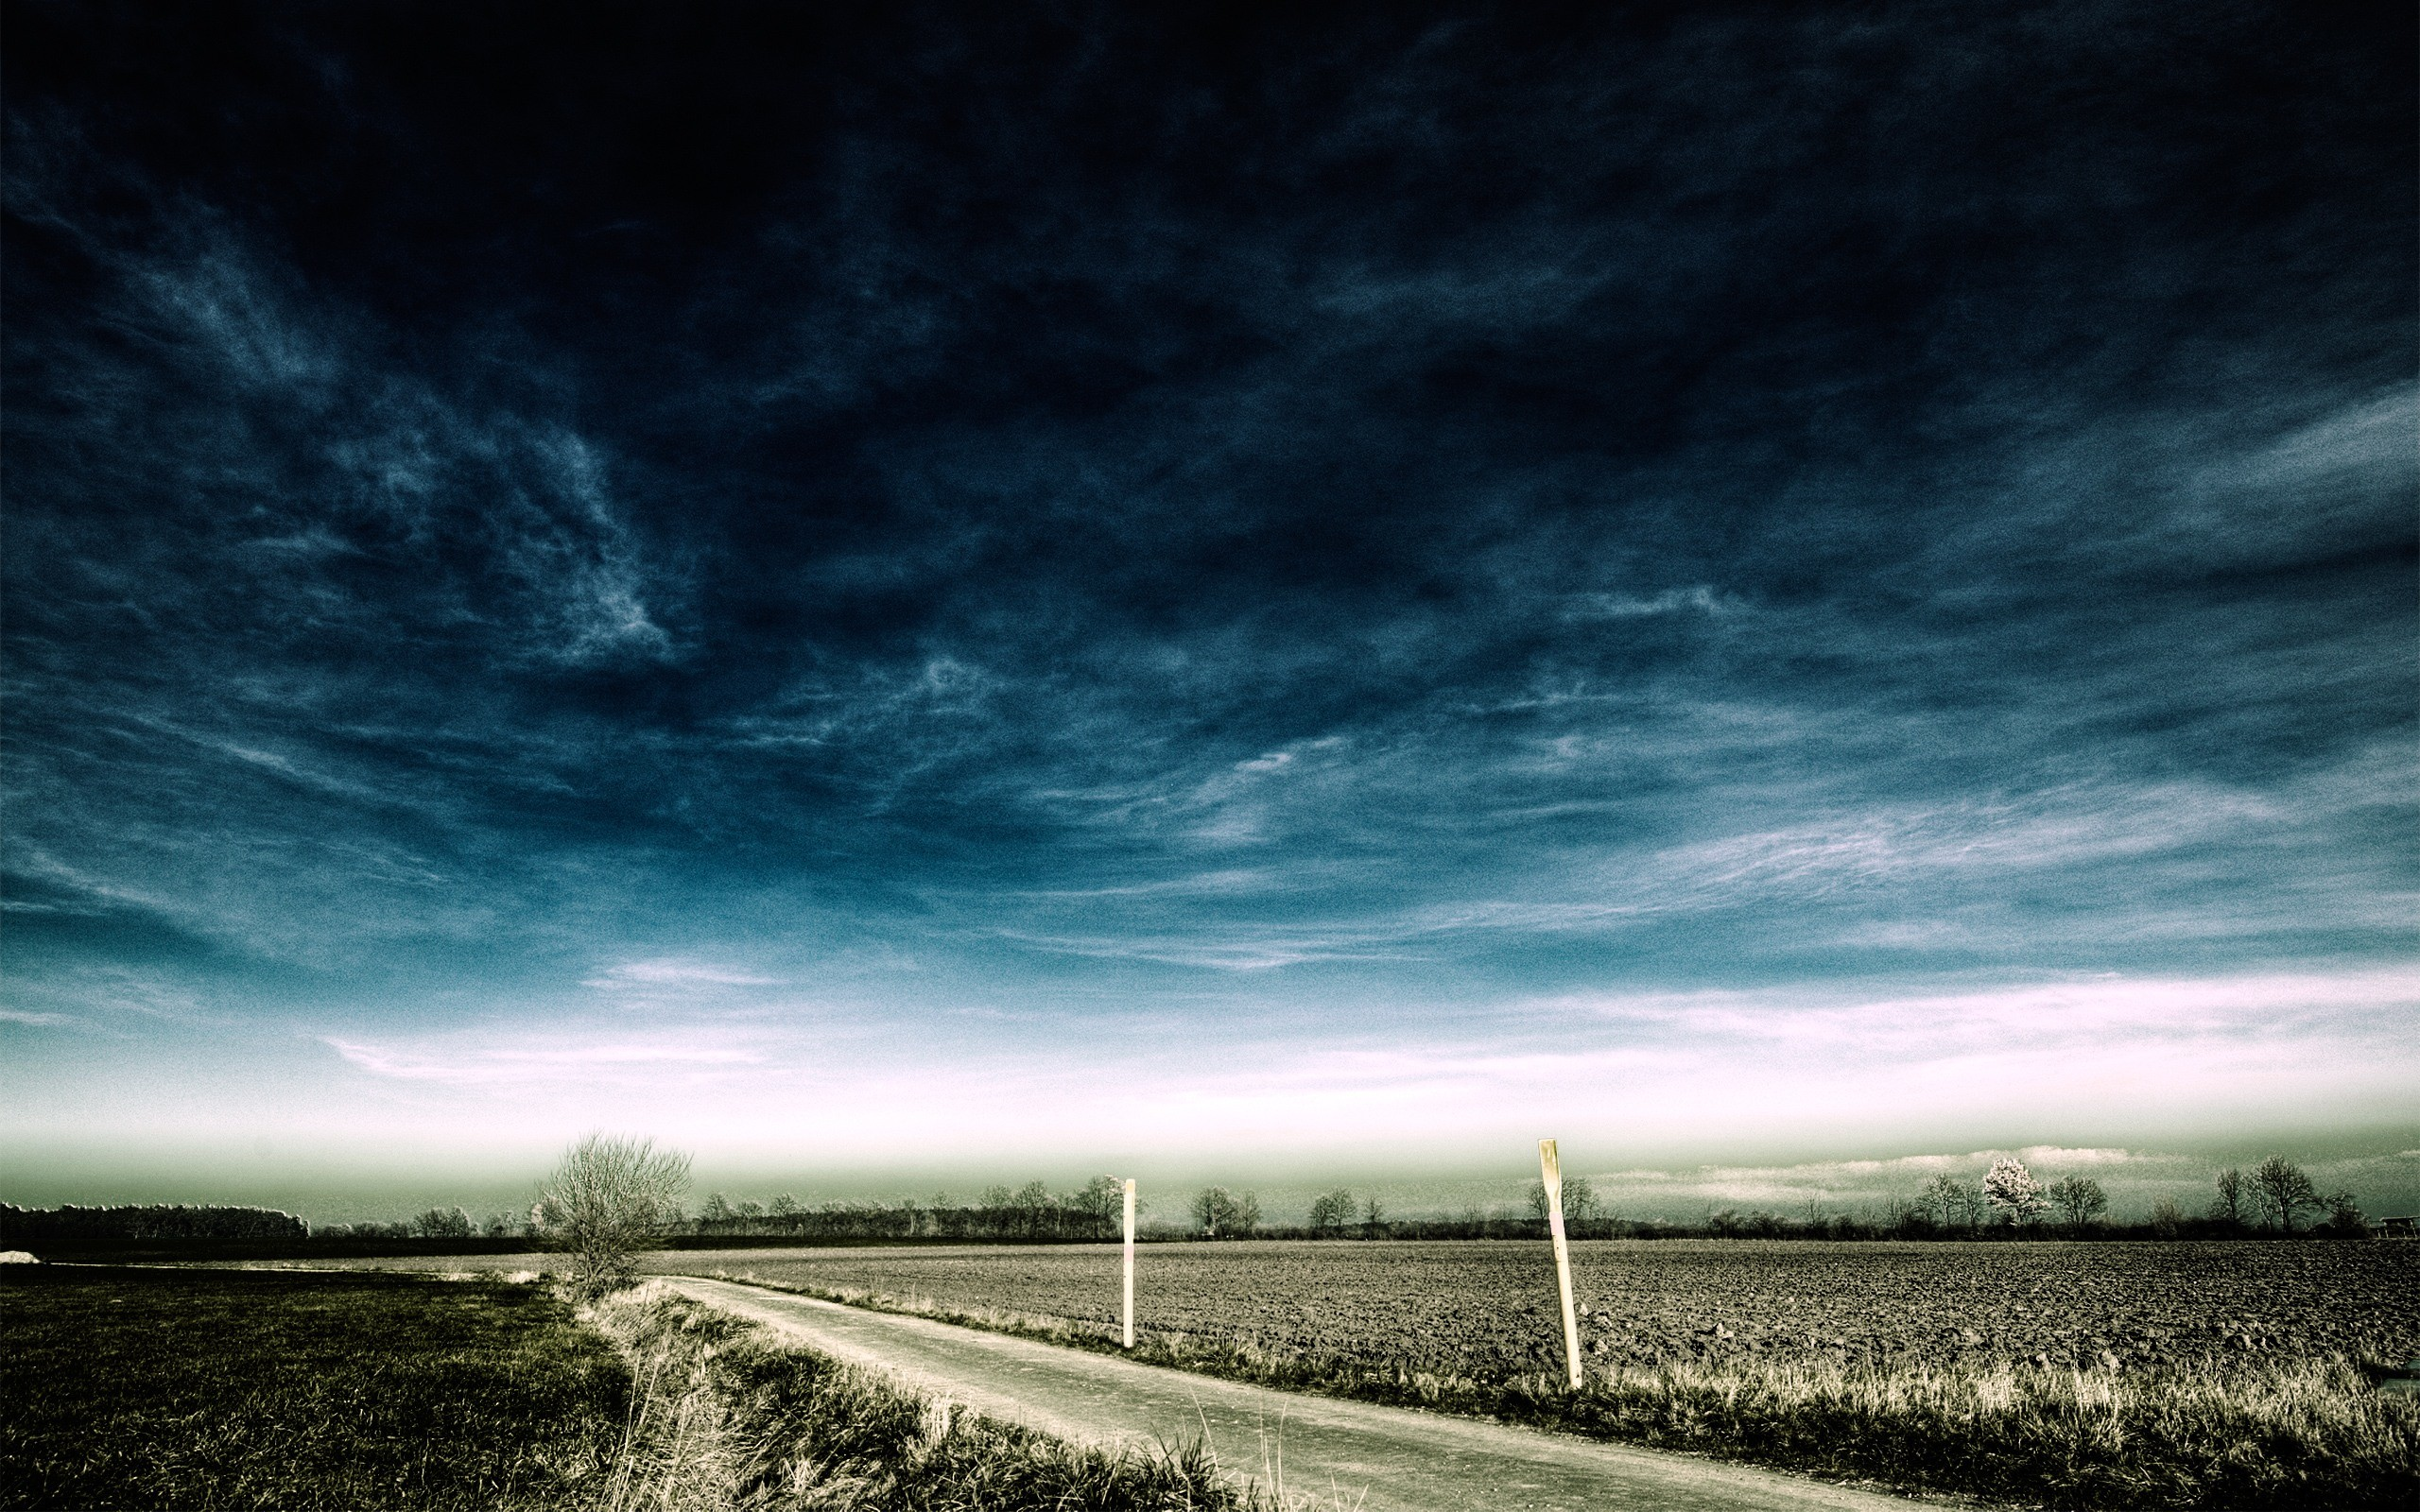 Stormy Sky Wallpapers and Stormy Sky Backgrounds 1 of 2